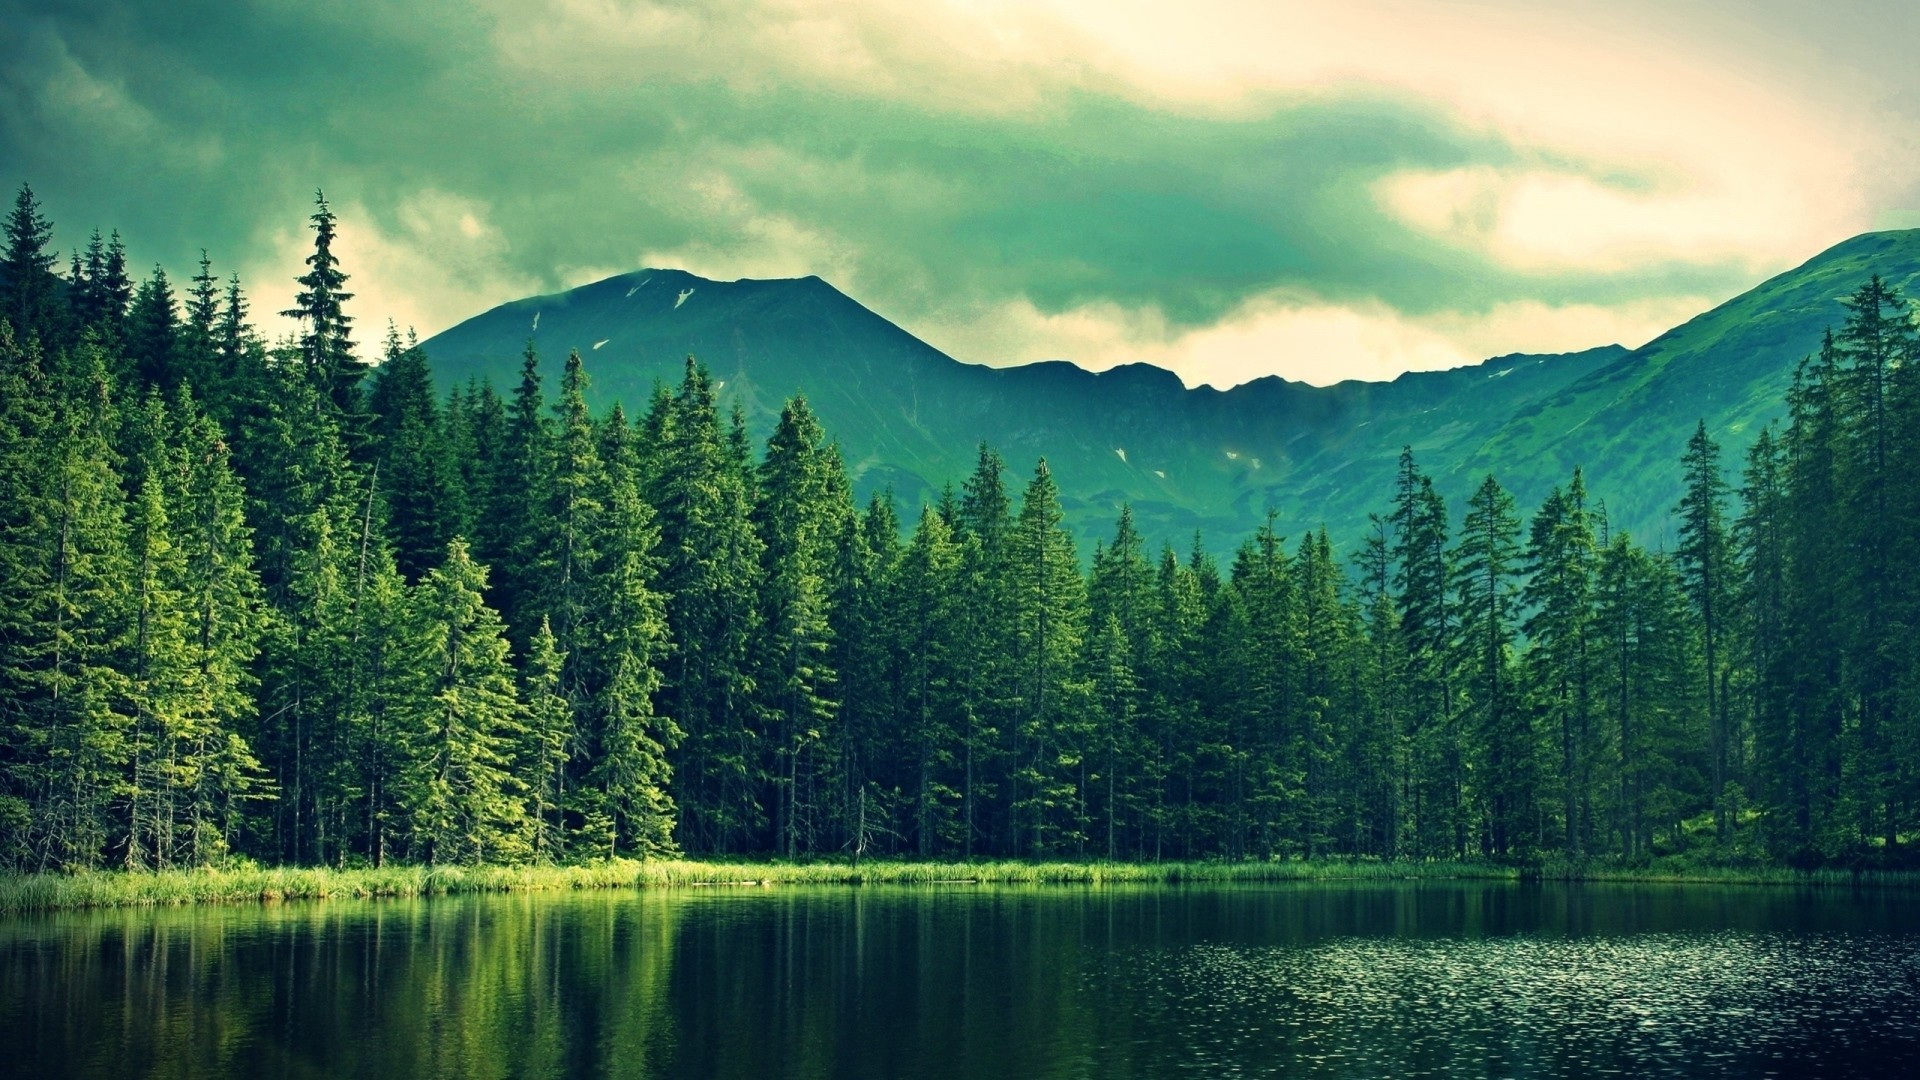 Wallpaper mountains, summer, lake, trees, forest